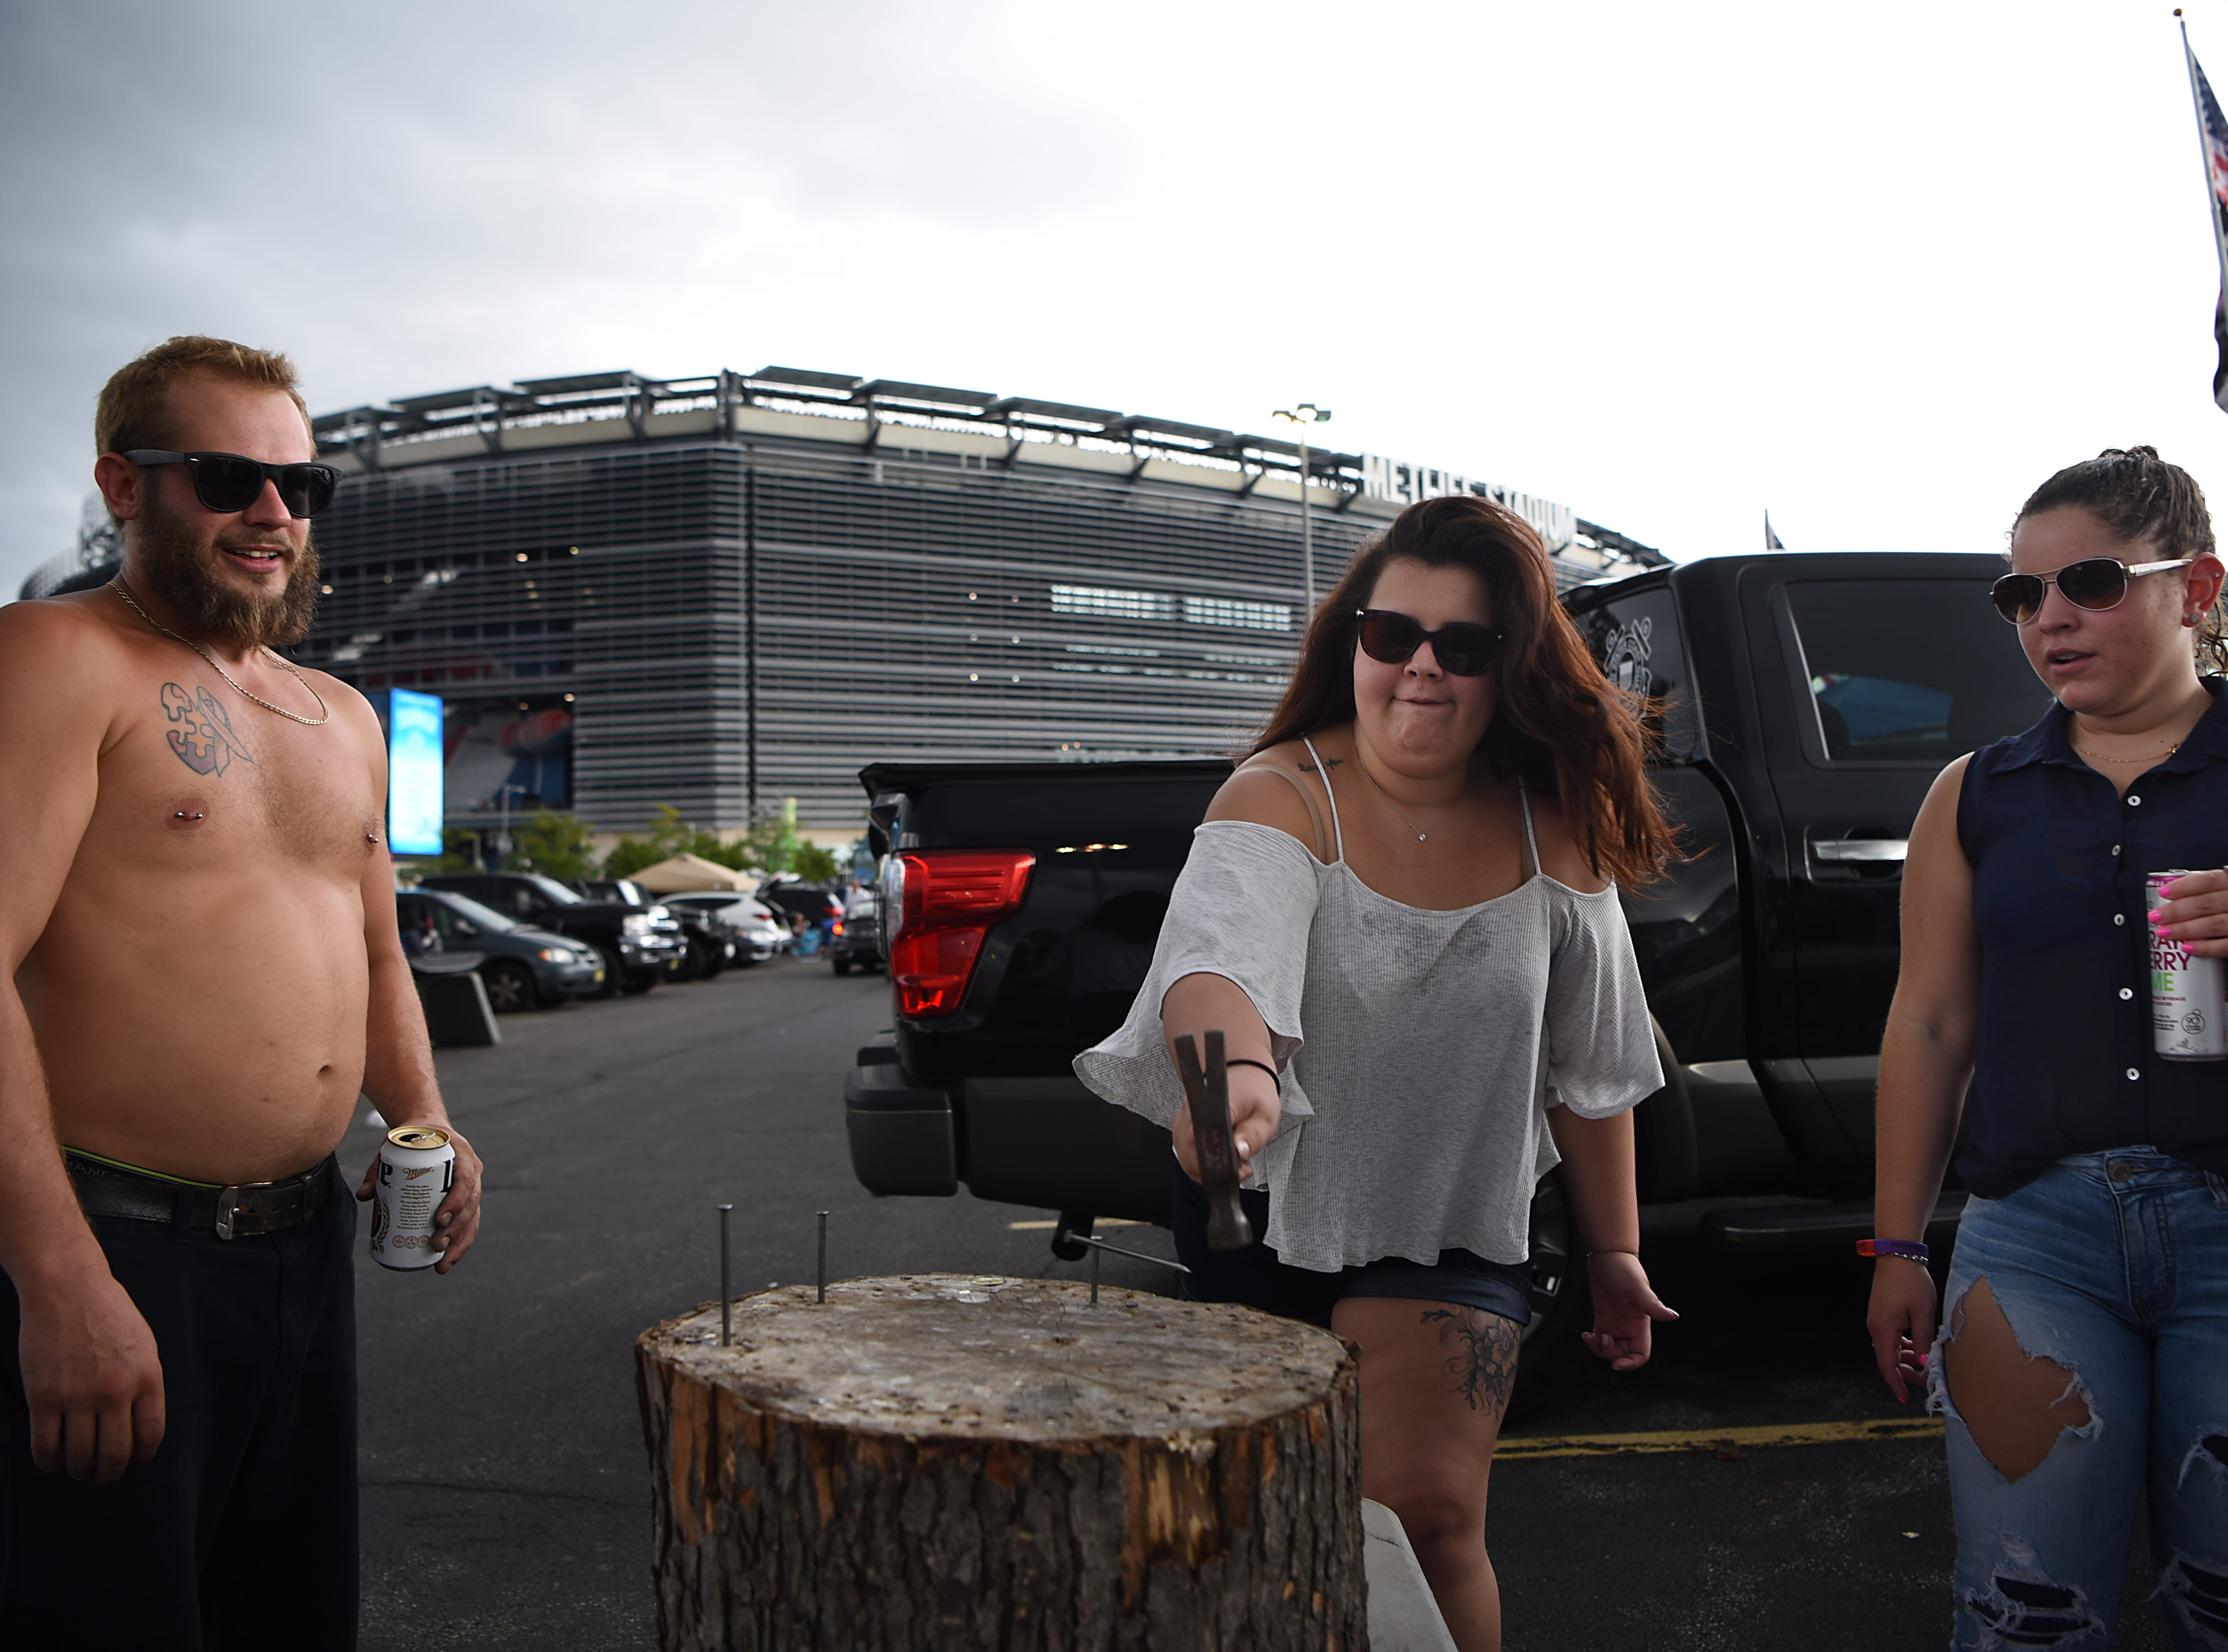 A group plays stump in the parking lot prior to the Kenny Chesney concert at MetLife stadium in East Rutherford on Saturday August 18, 2018. (From left) Matt Coccurello from Long Branch, Steffany Santos from Old Bridge and Bianca Dos Santos from